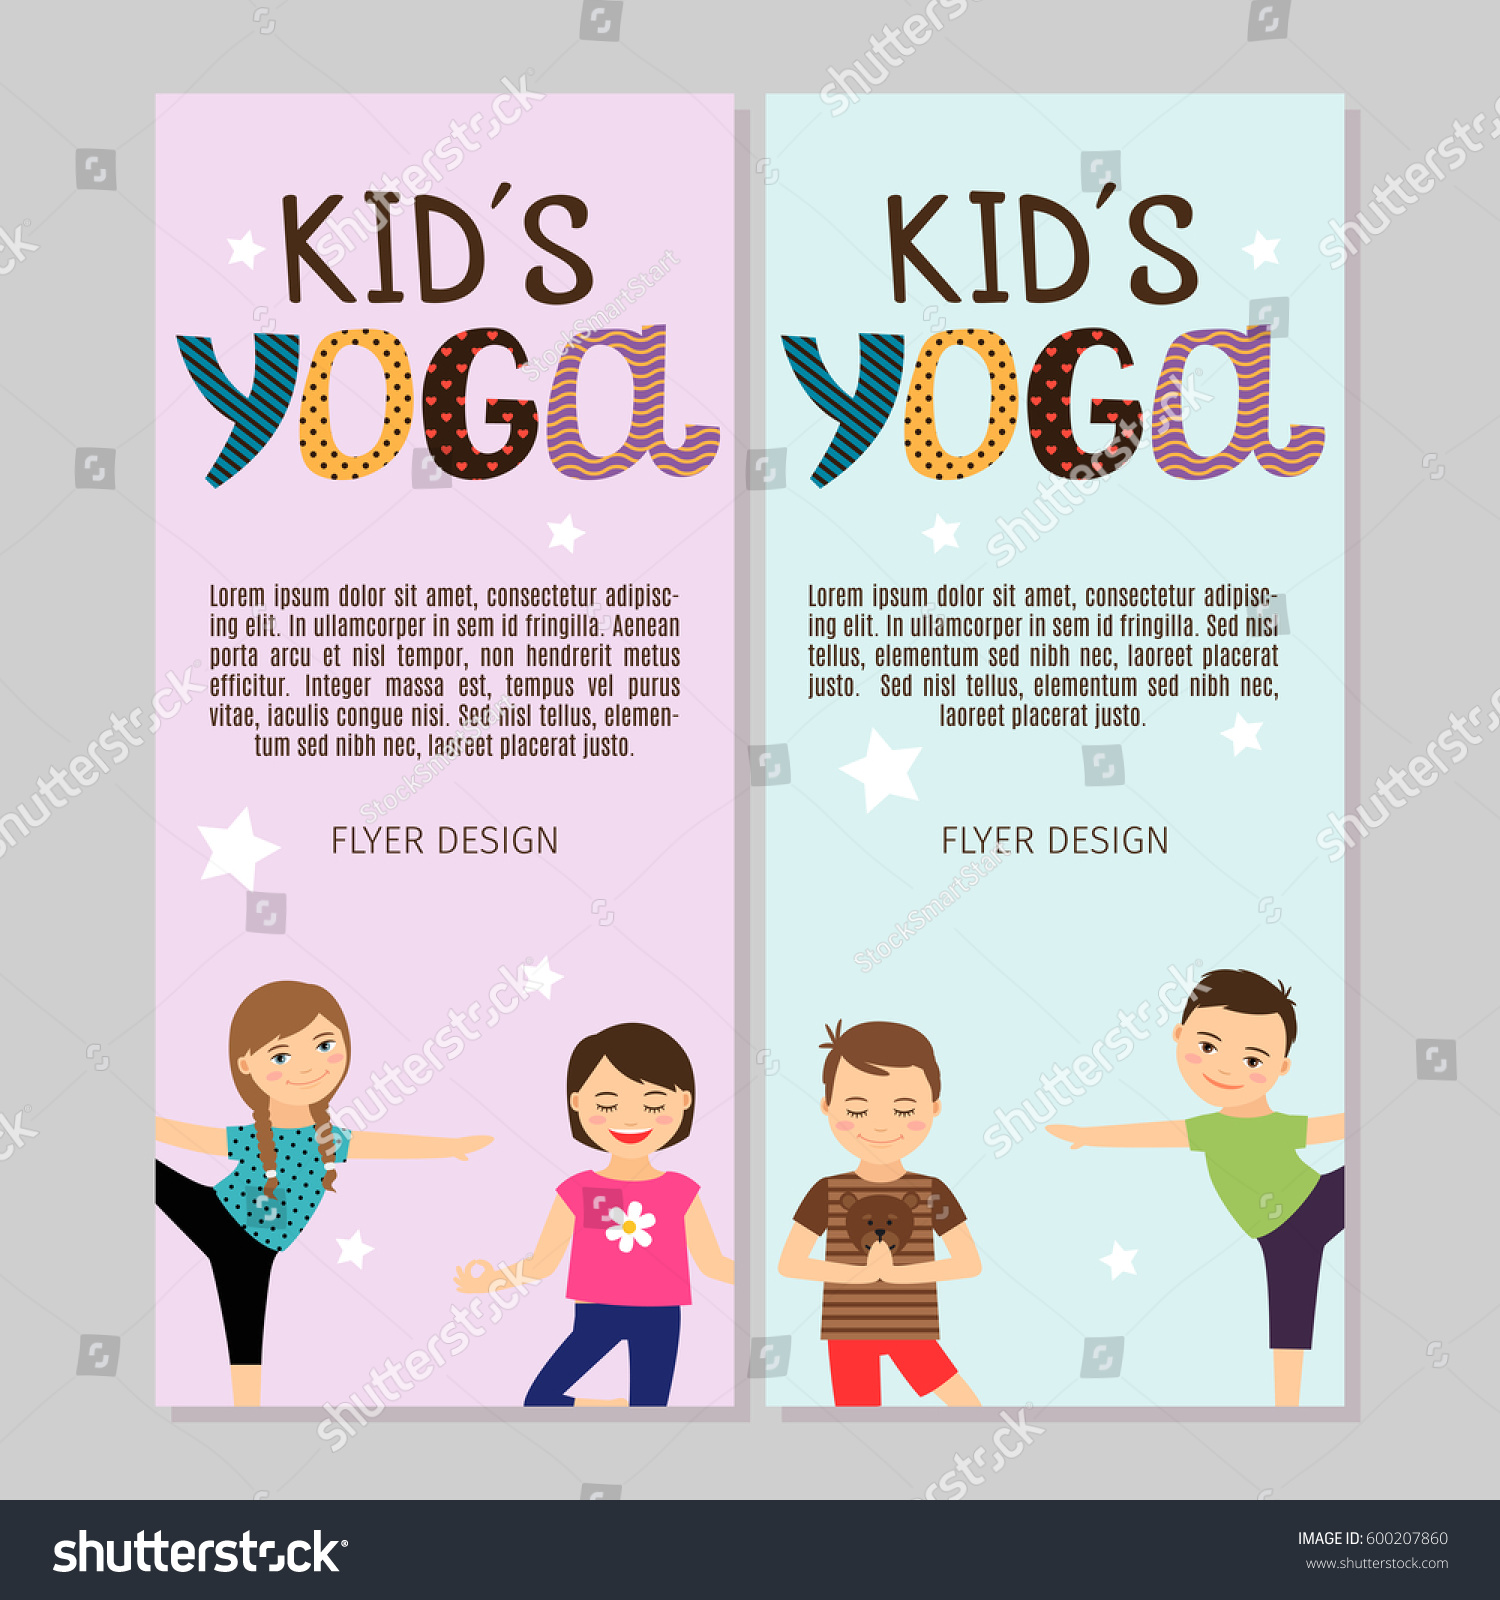 cute yoga flyers boys girls vector stock vector  cute yoga flyers boys and girls vector illustration